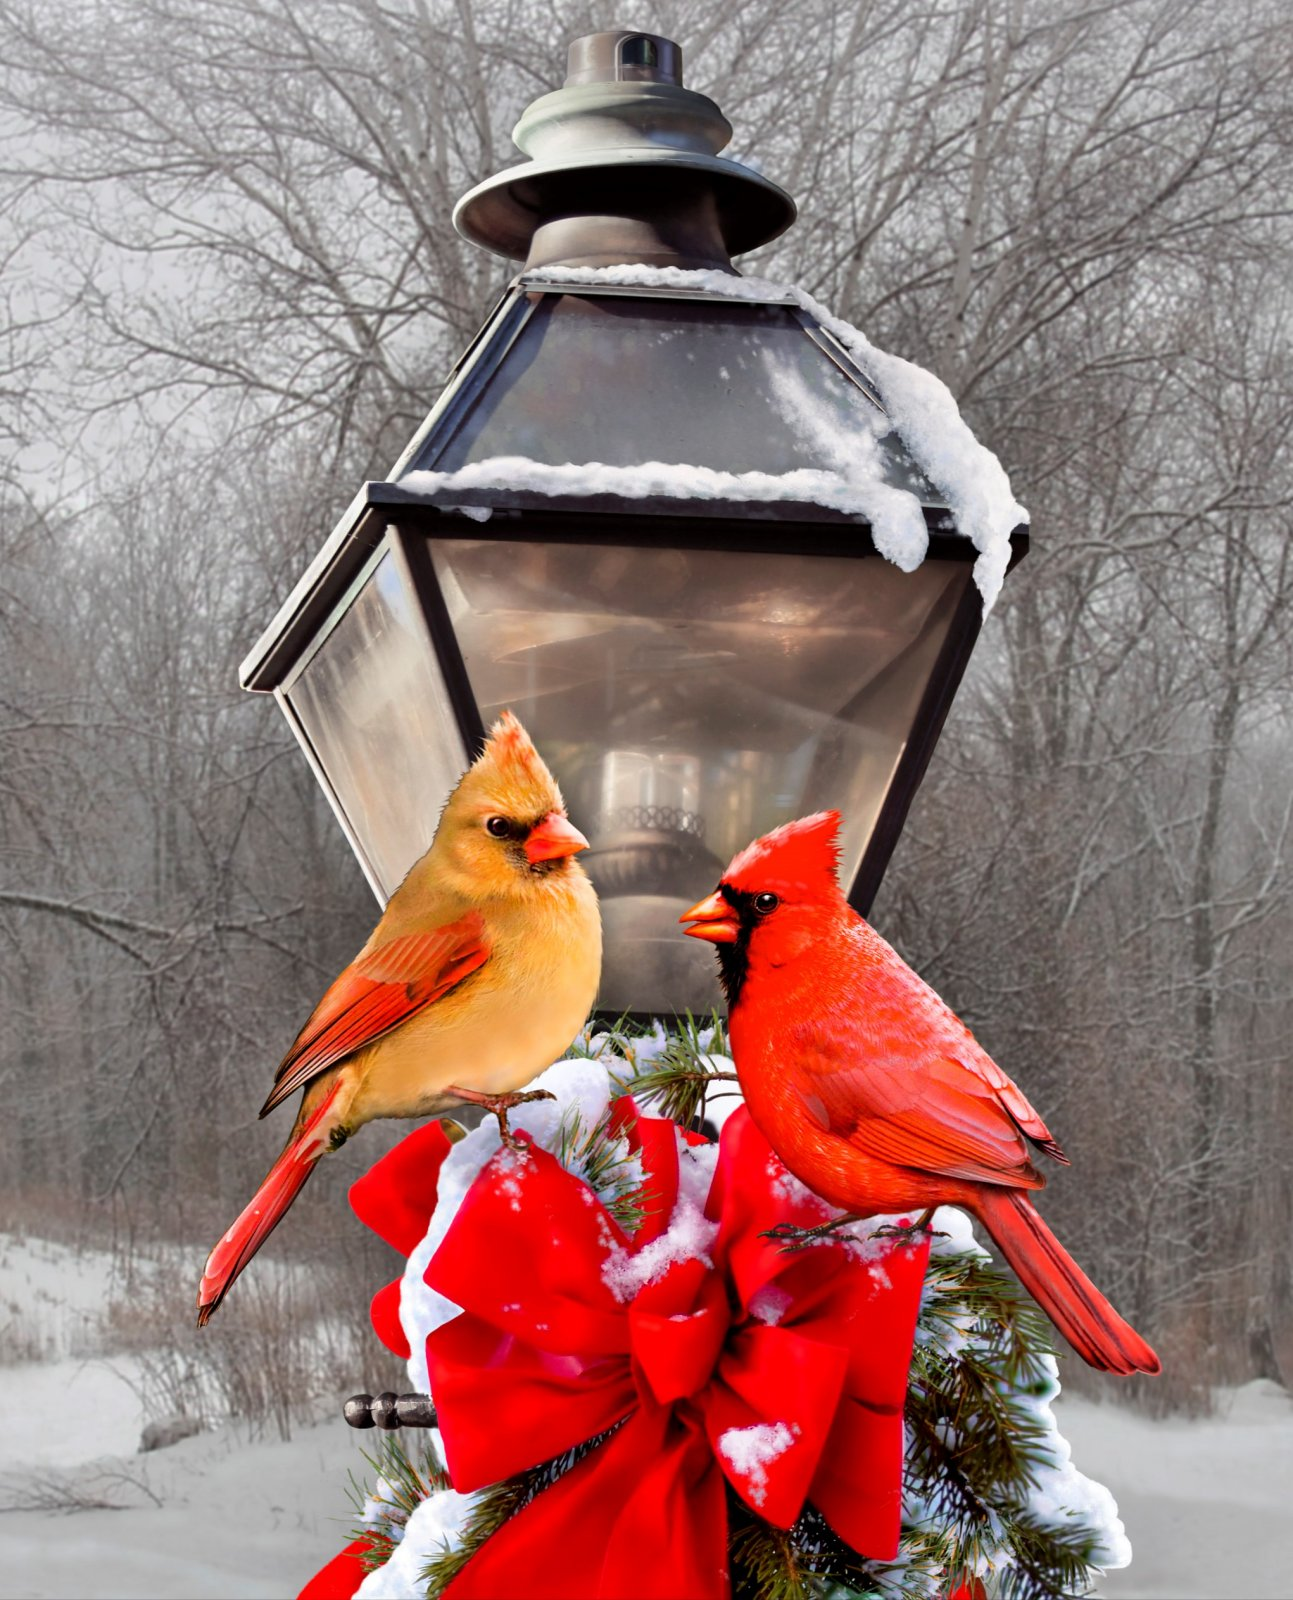 DT-Exclusives GG-0032-9C-1 Cardinals & the Winter Street Lamp Panel